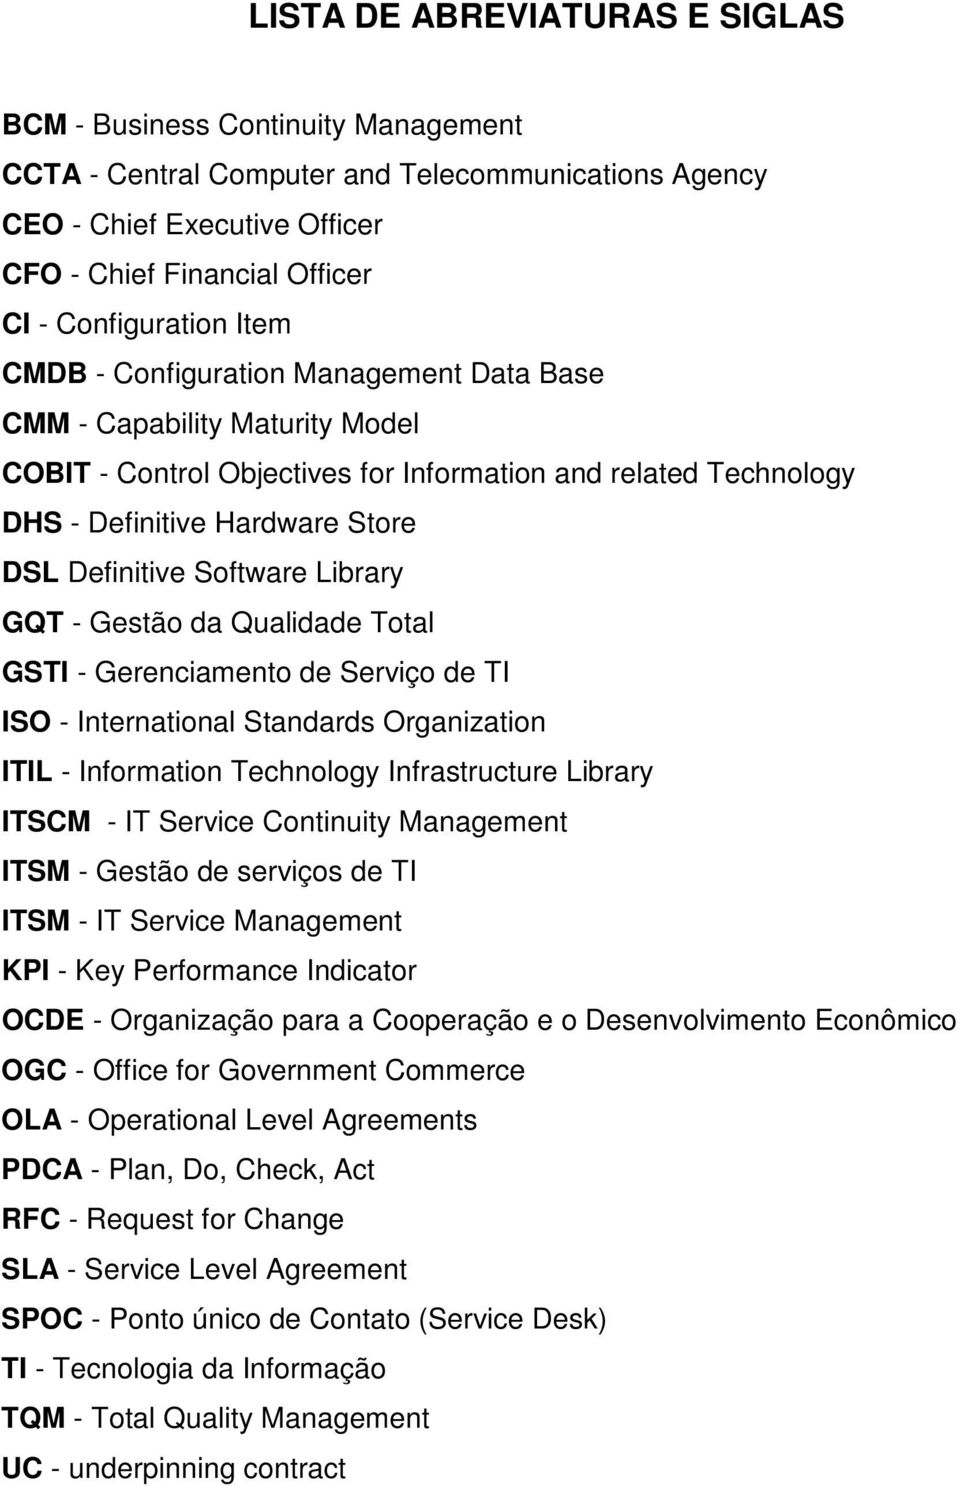 Definitive Software Library GQT - Gestão da Qualidade Total GSTI - Gerenciamento de Serviço de TI ISO - International Standards Organization ITIL - Information Technology Infrastructure Library ITSCM